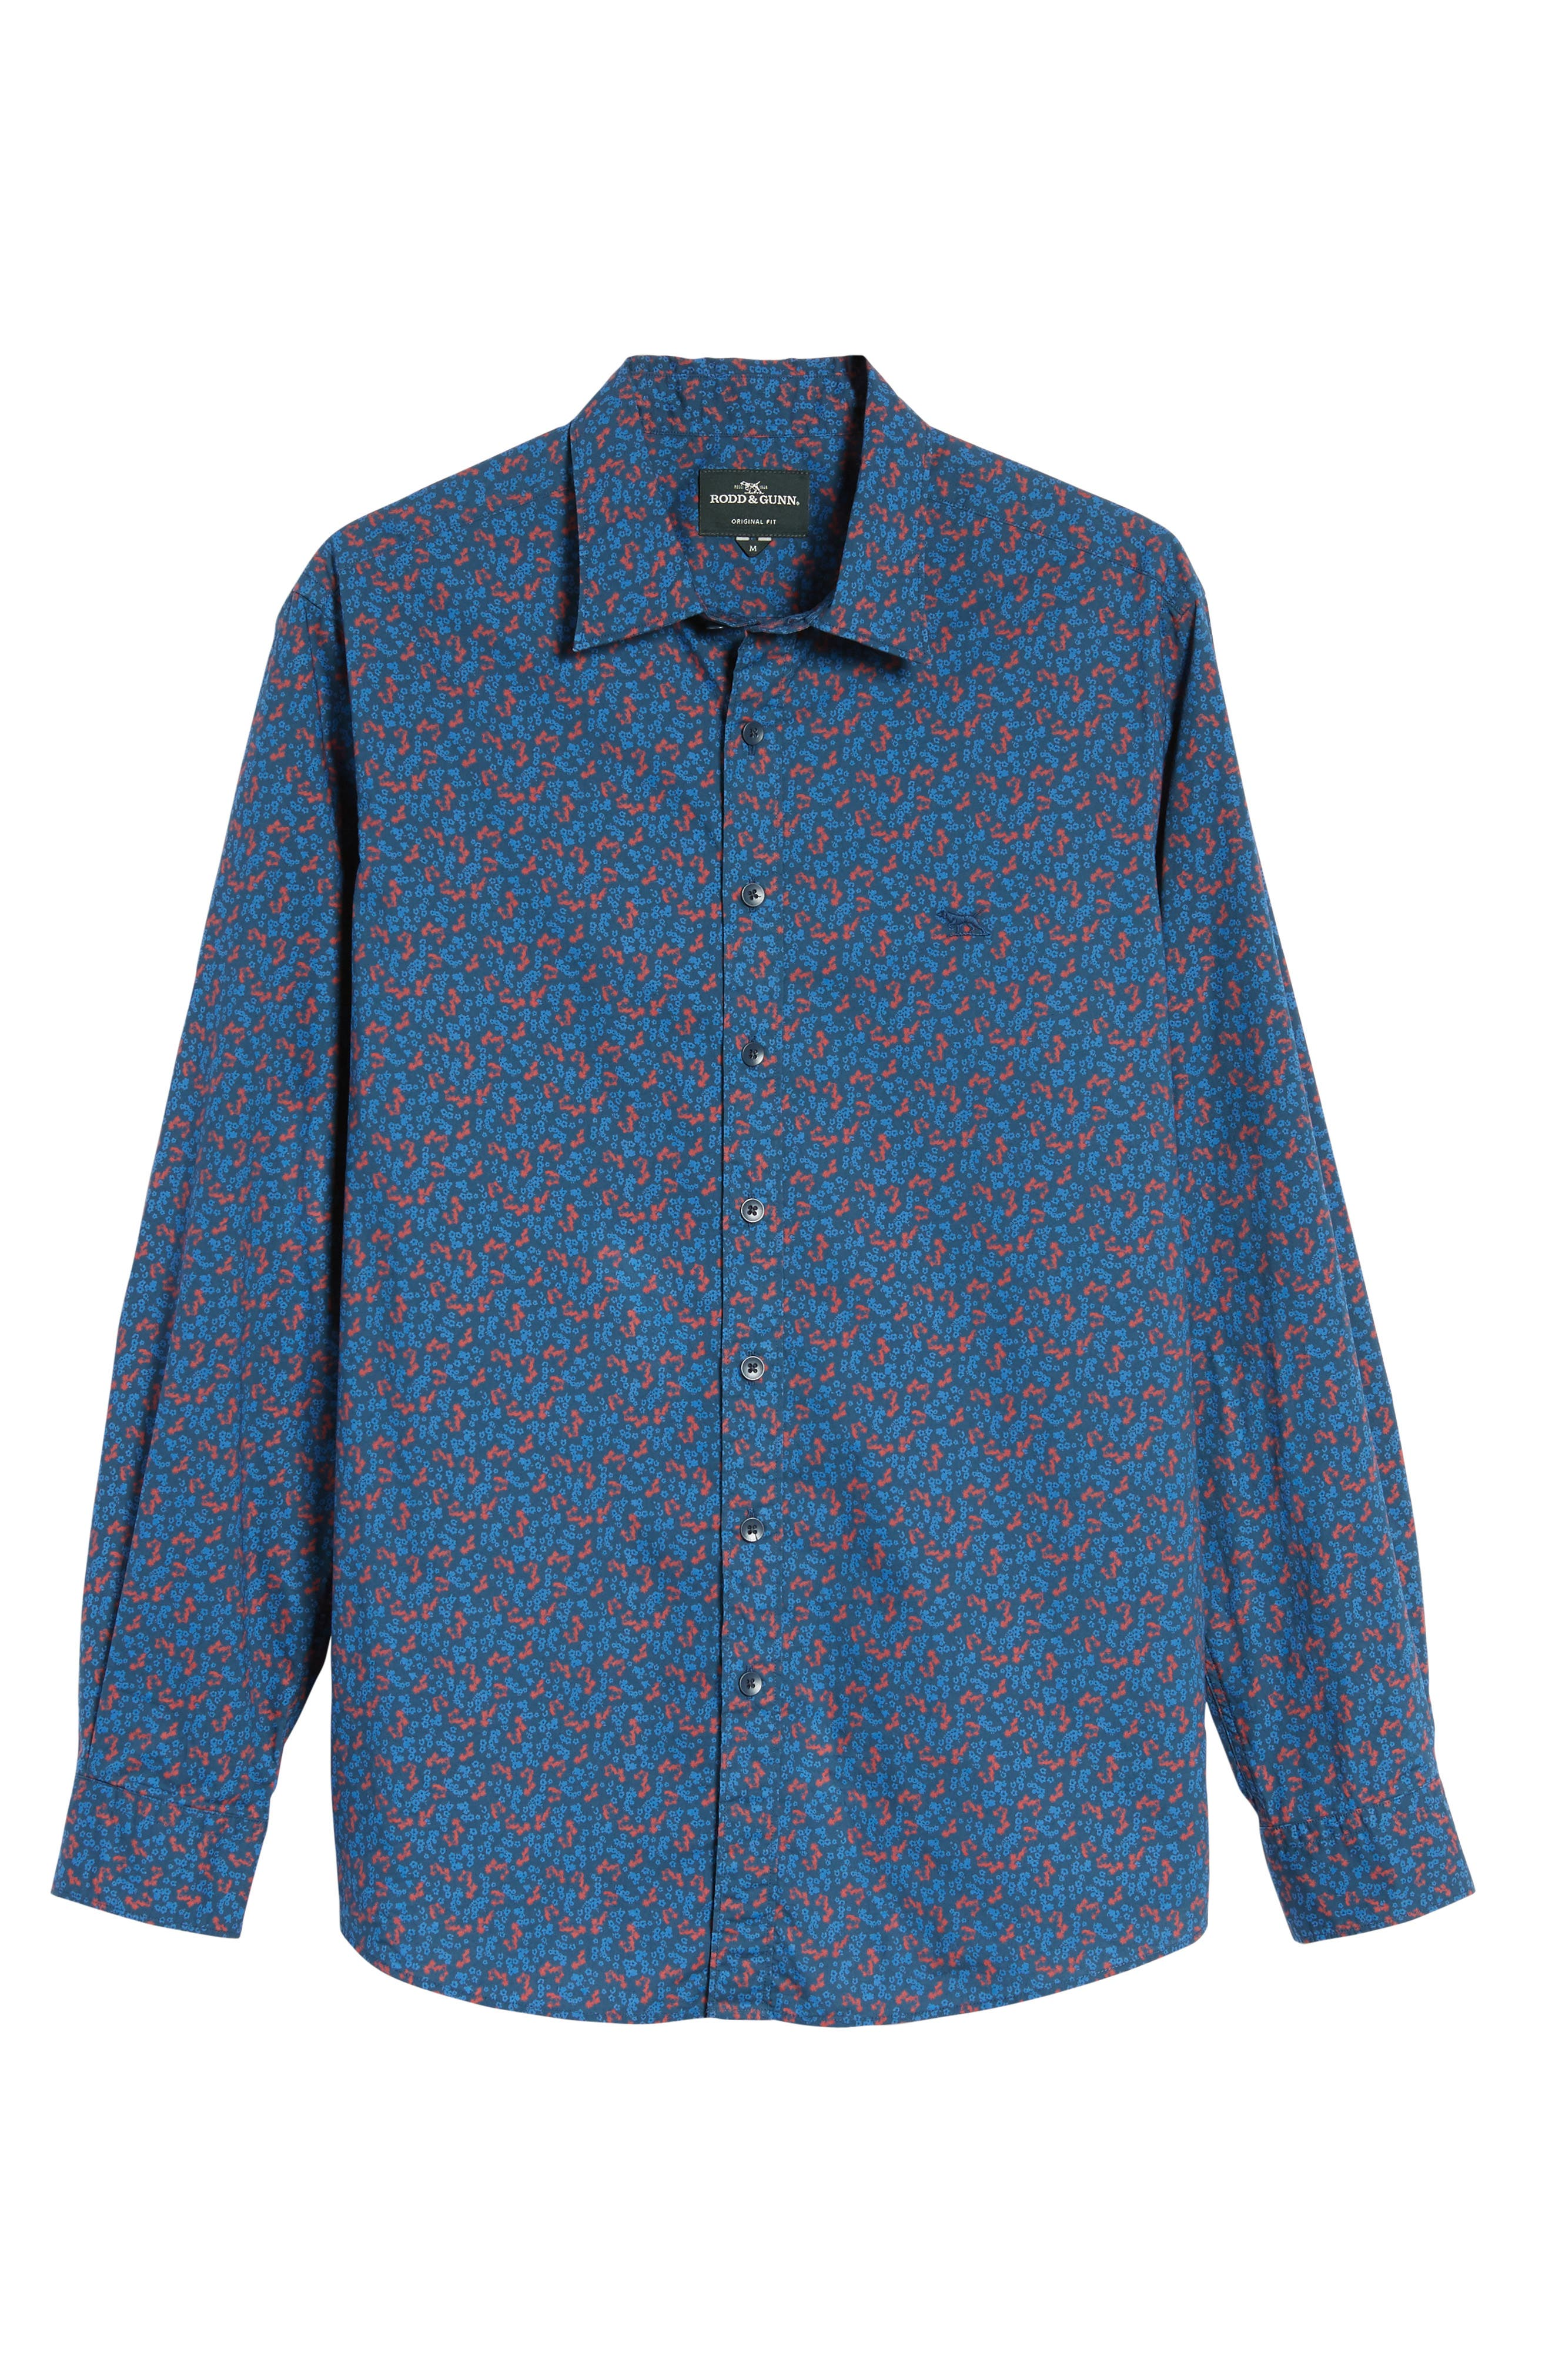 Patons Rock Original Fit Print Sport Shirt,                             Alternate thumbnail 6, color,                             Midnight